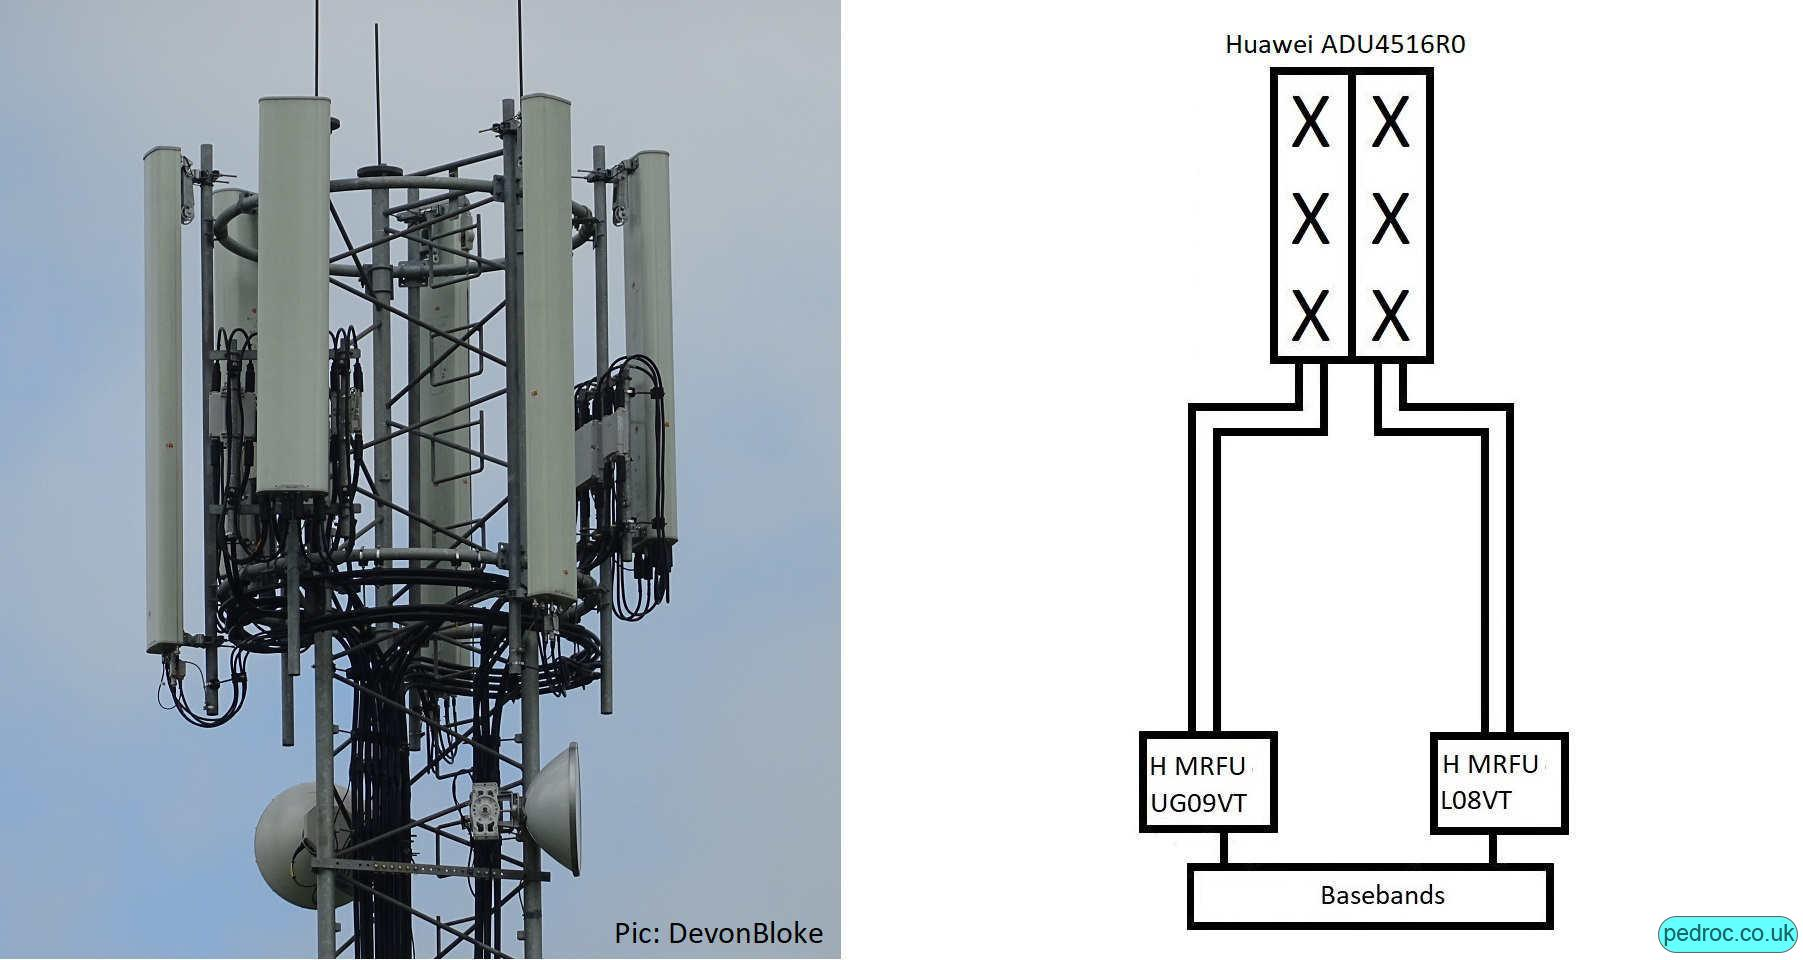 Vodafone Huawei low band site with Huawei ADU4516R0 dual low antennas.